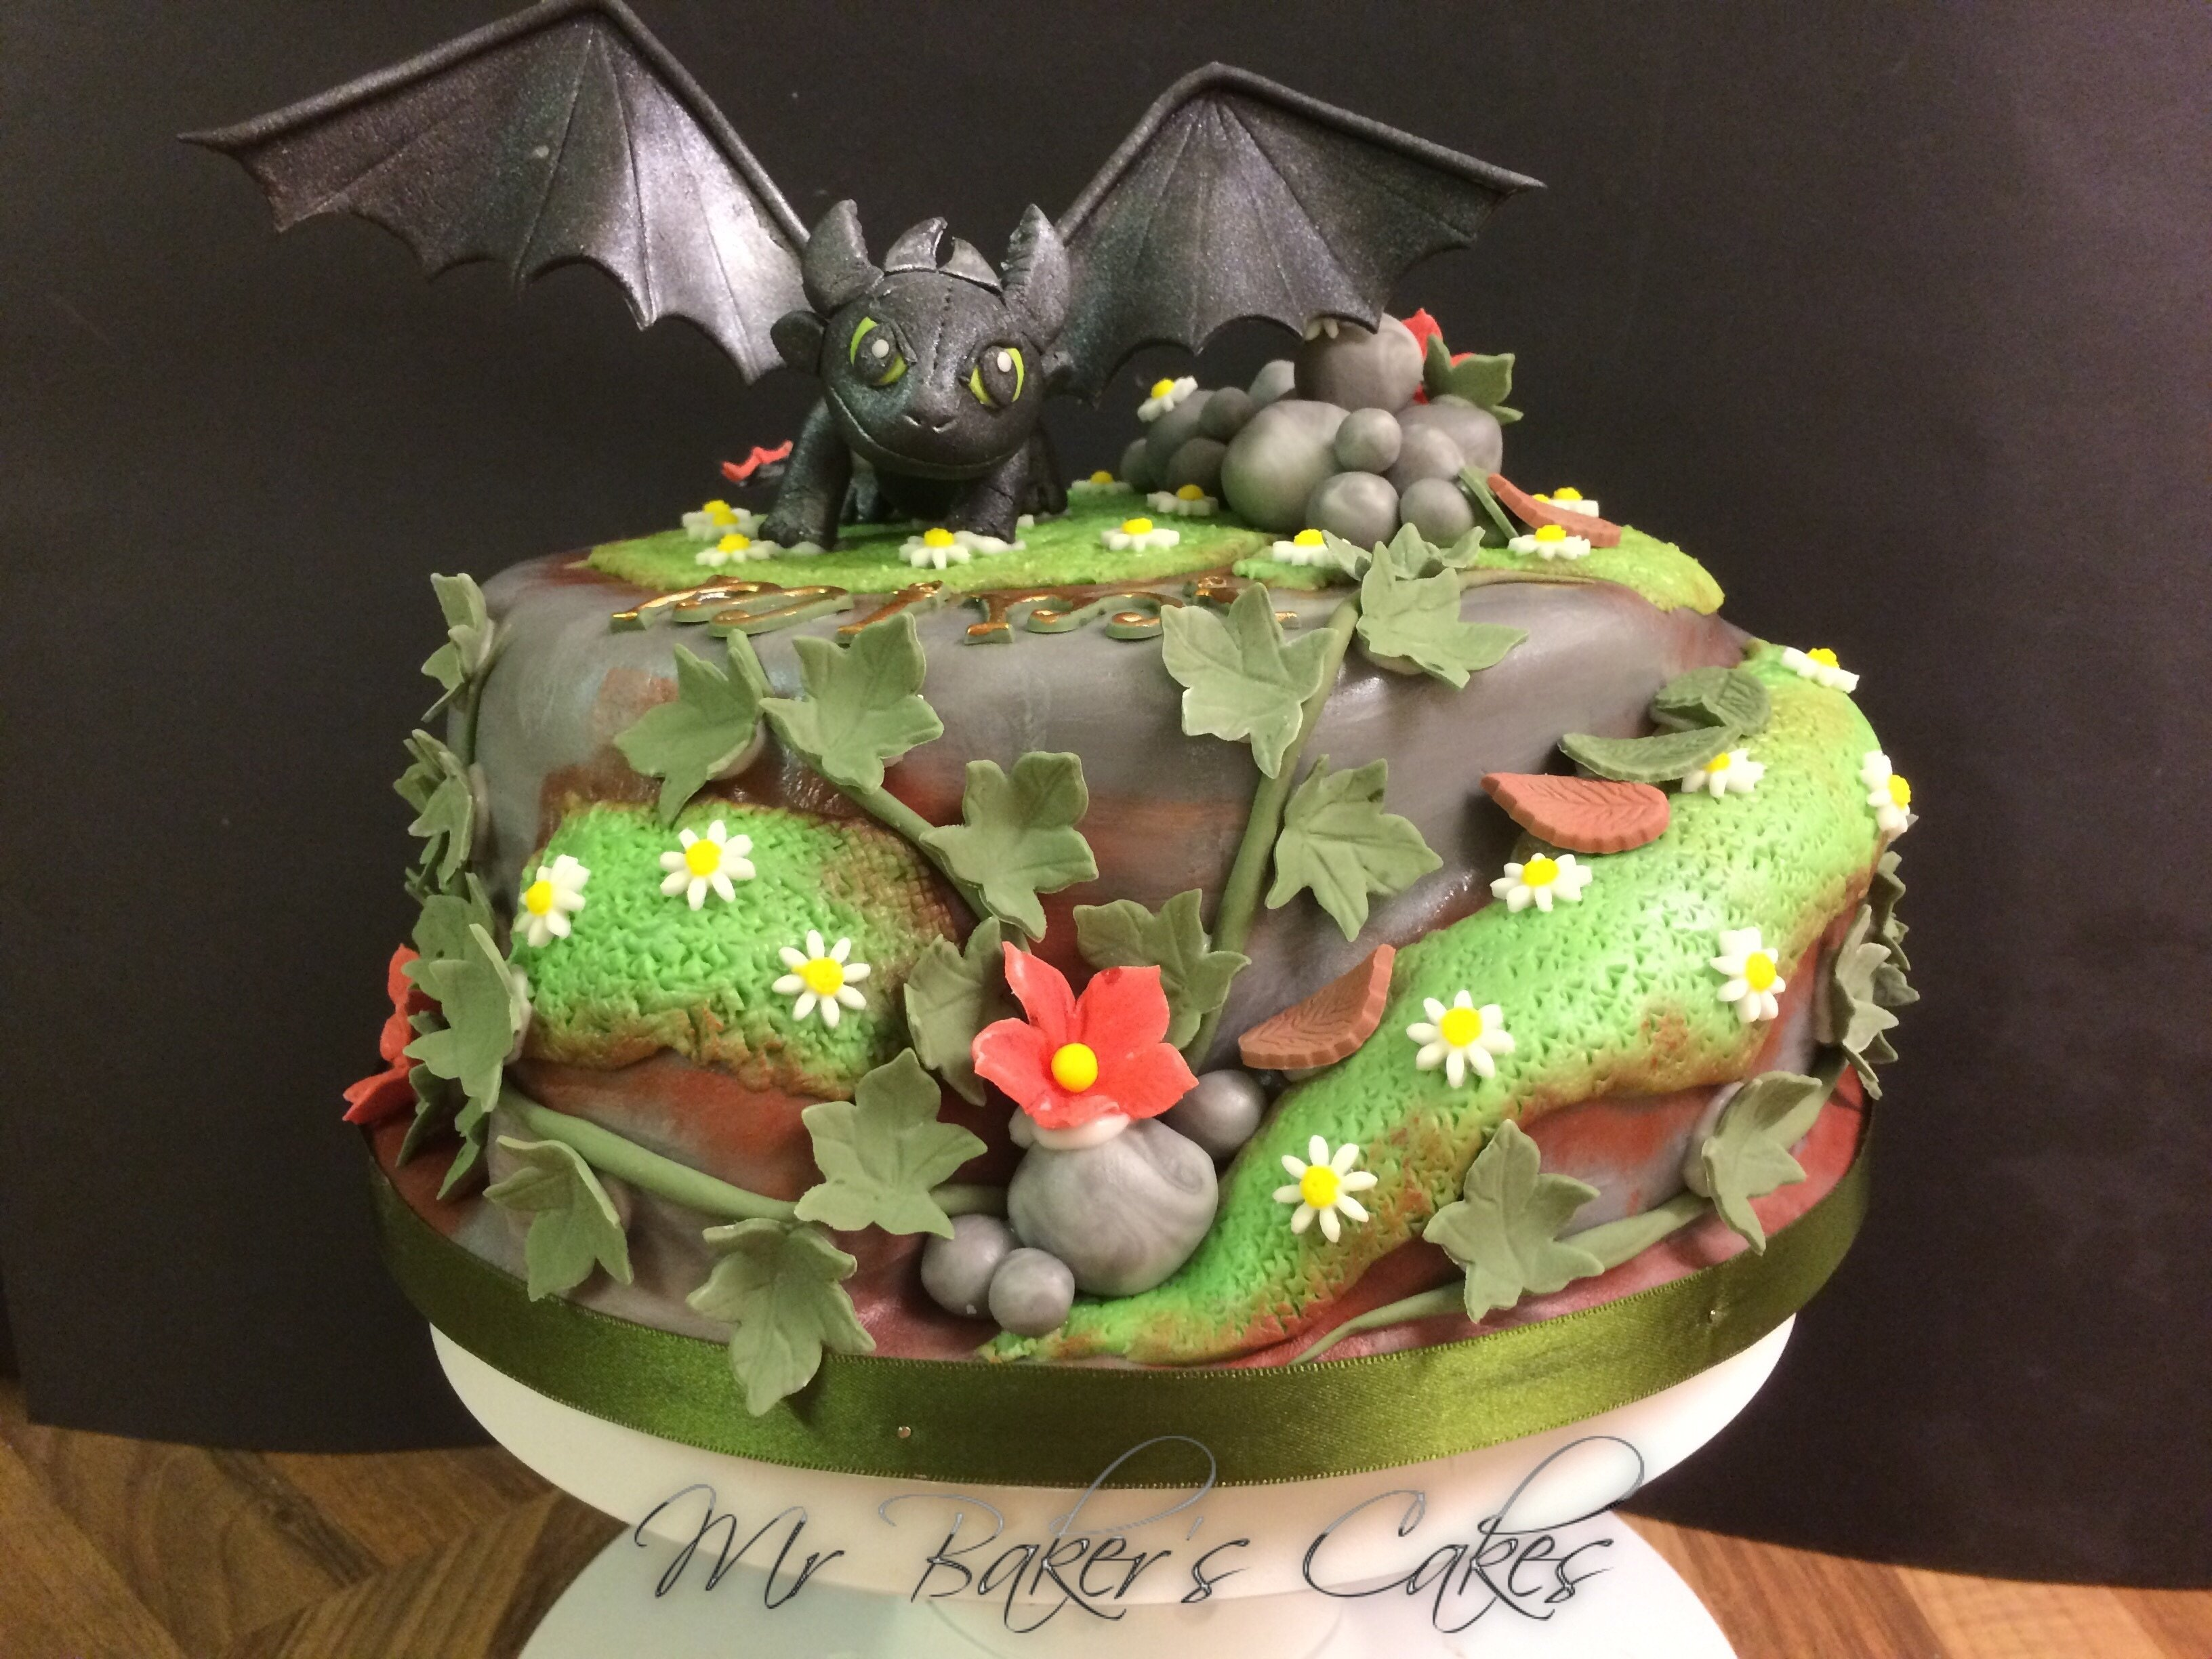 10 Most Recommended How To Train Your Dragon Cake Ideas toothless how to train your dragon cake cakecentral 2020